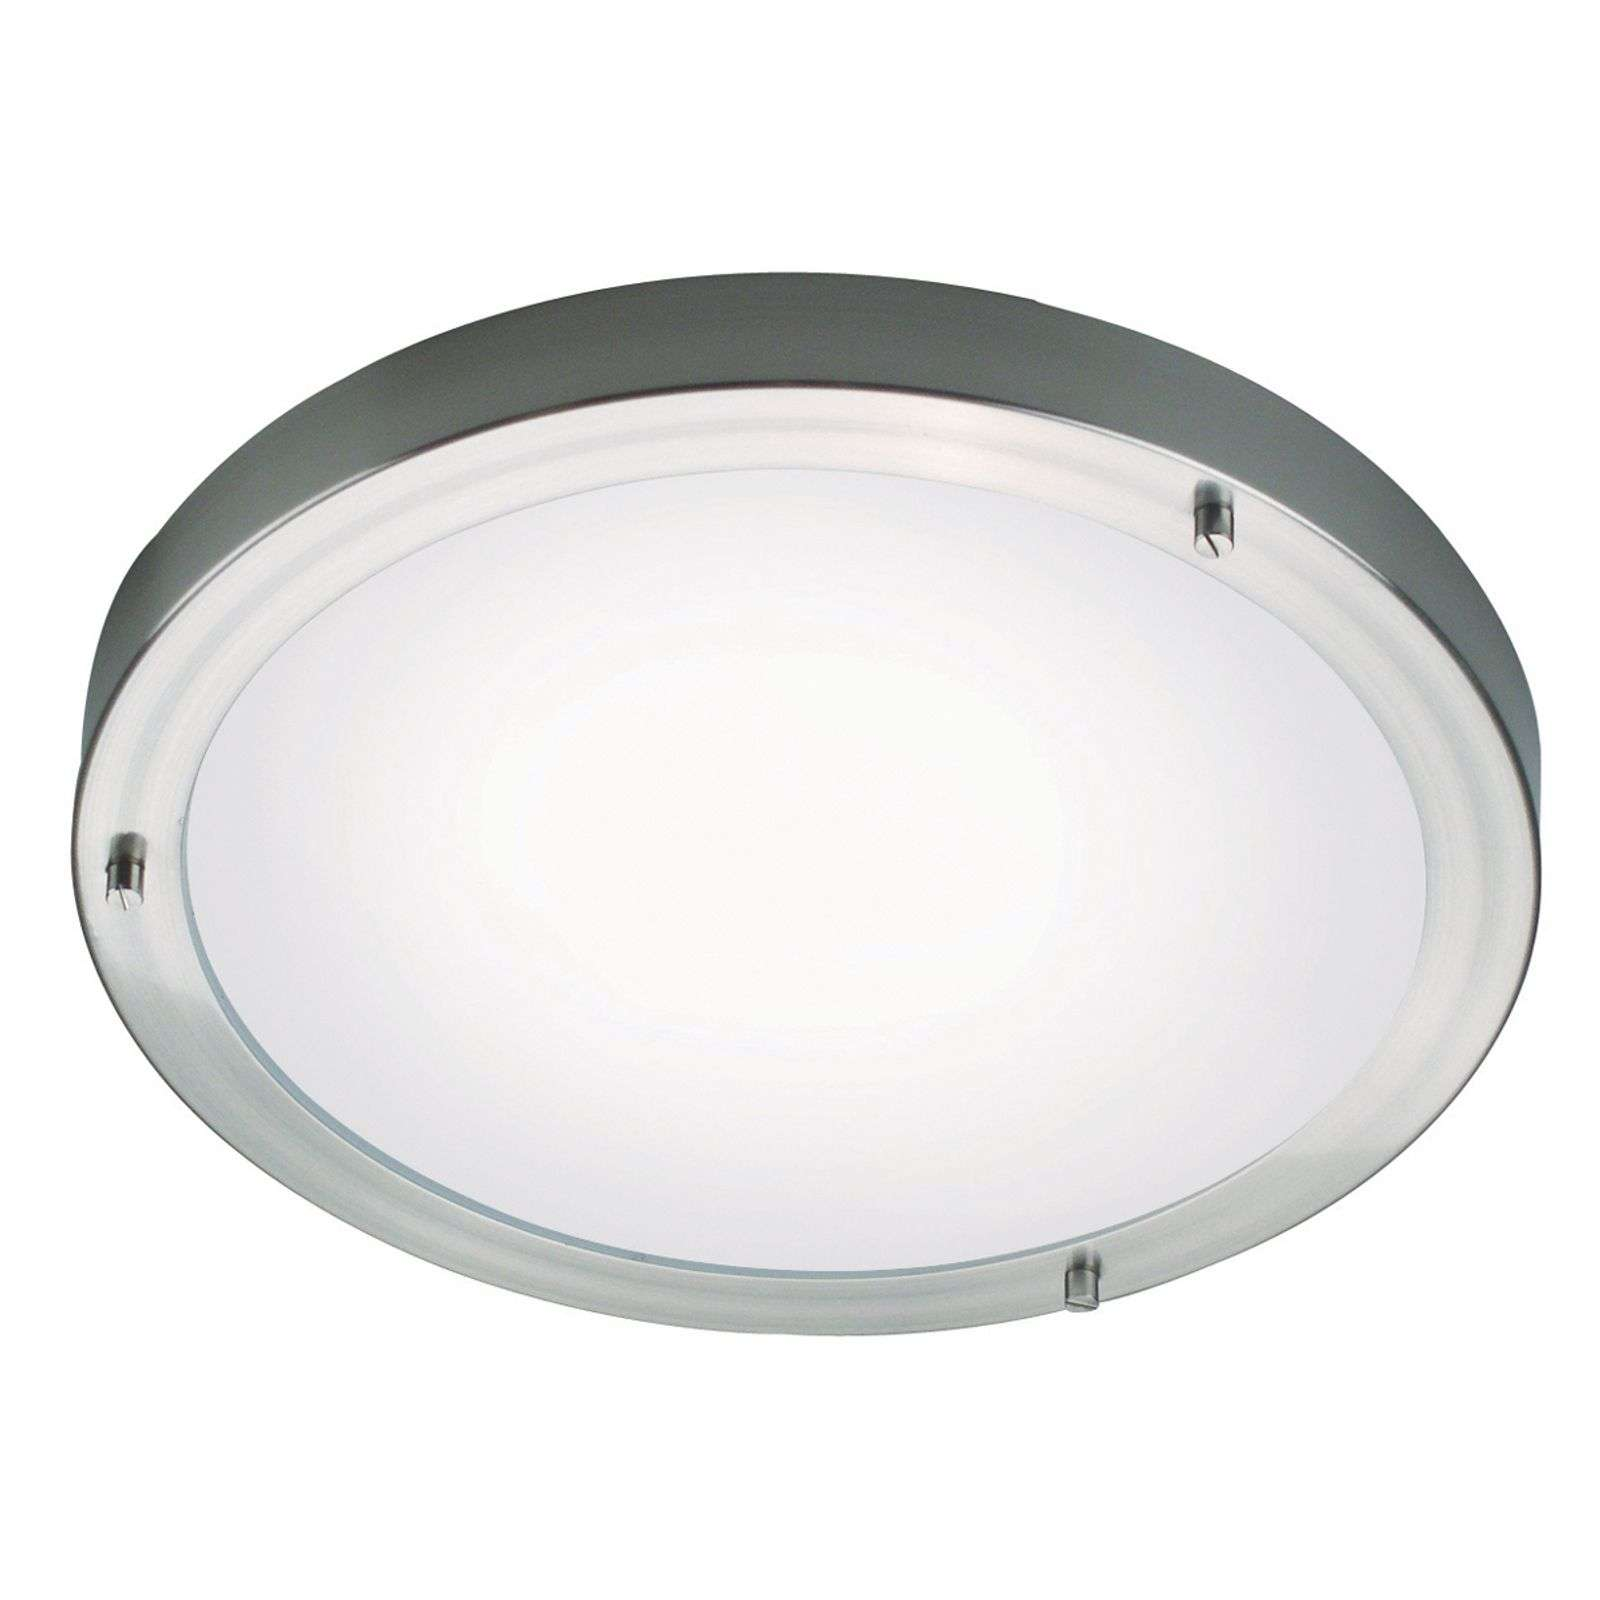 Ancona Maxi - plafonnier LED avec protection IP43